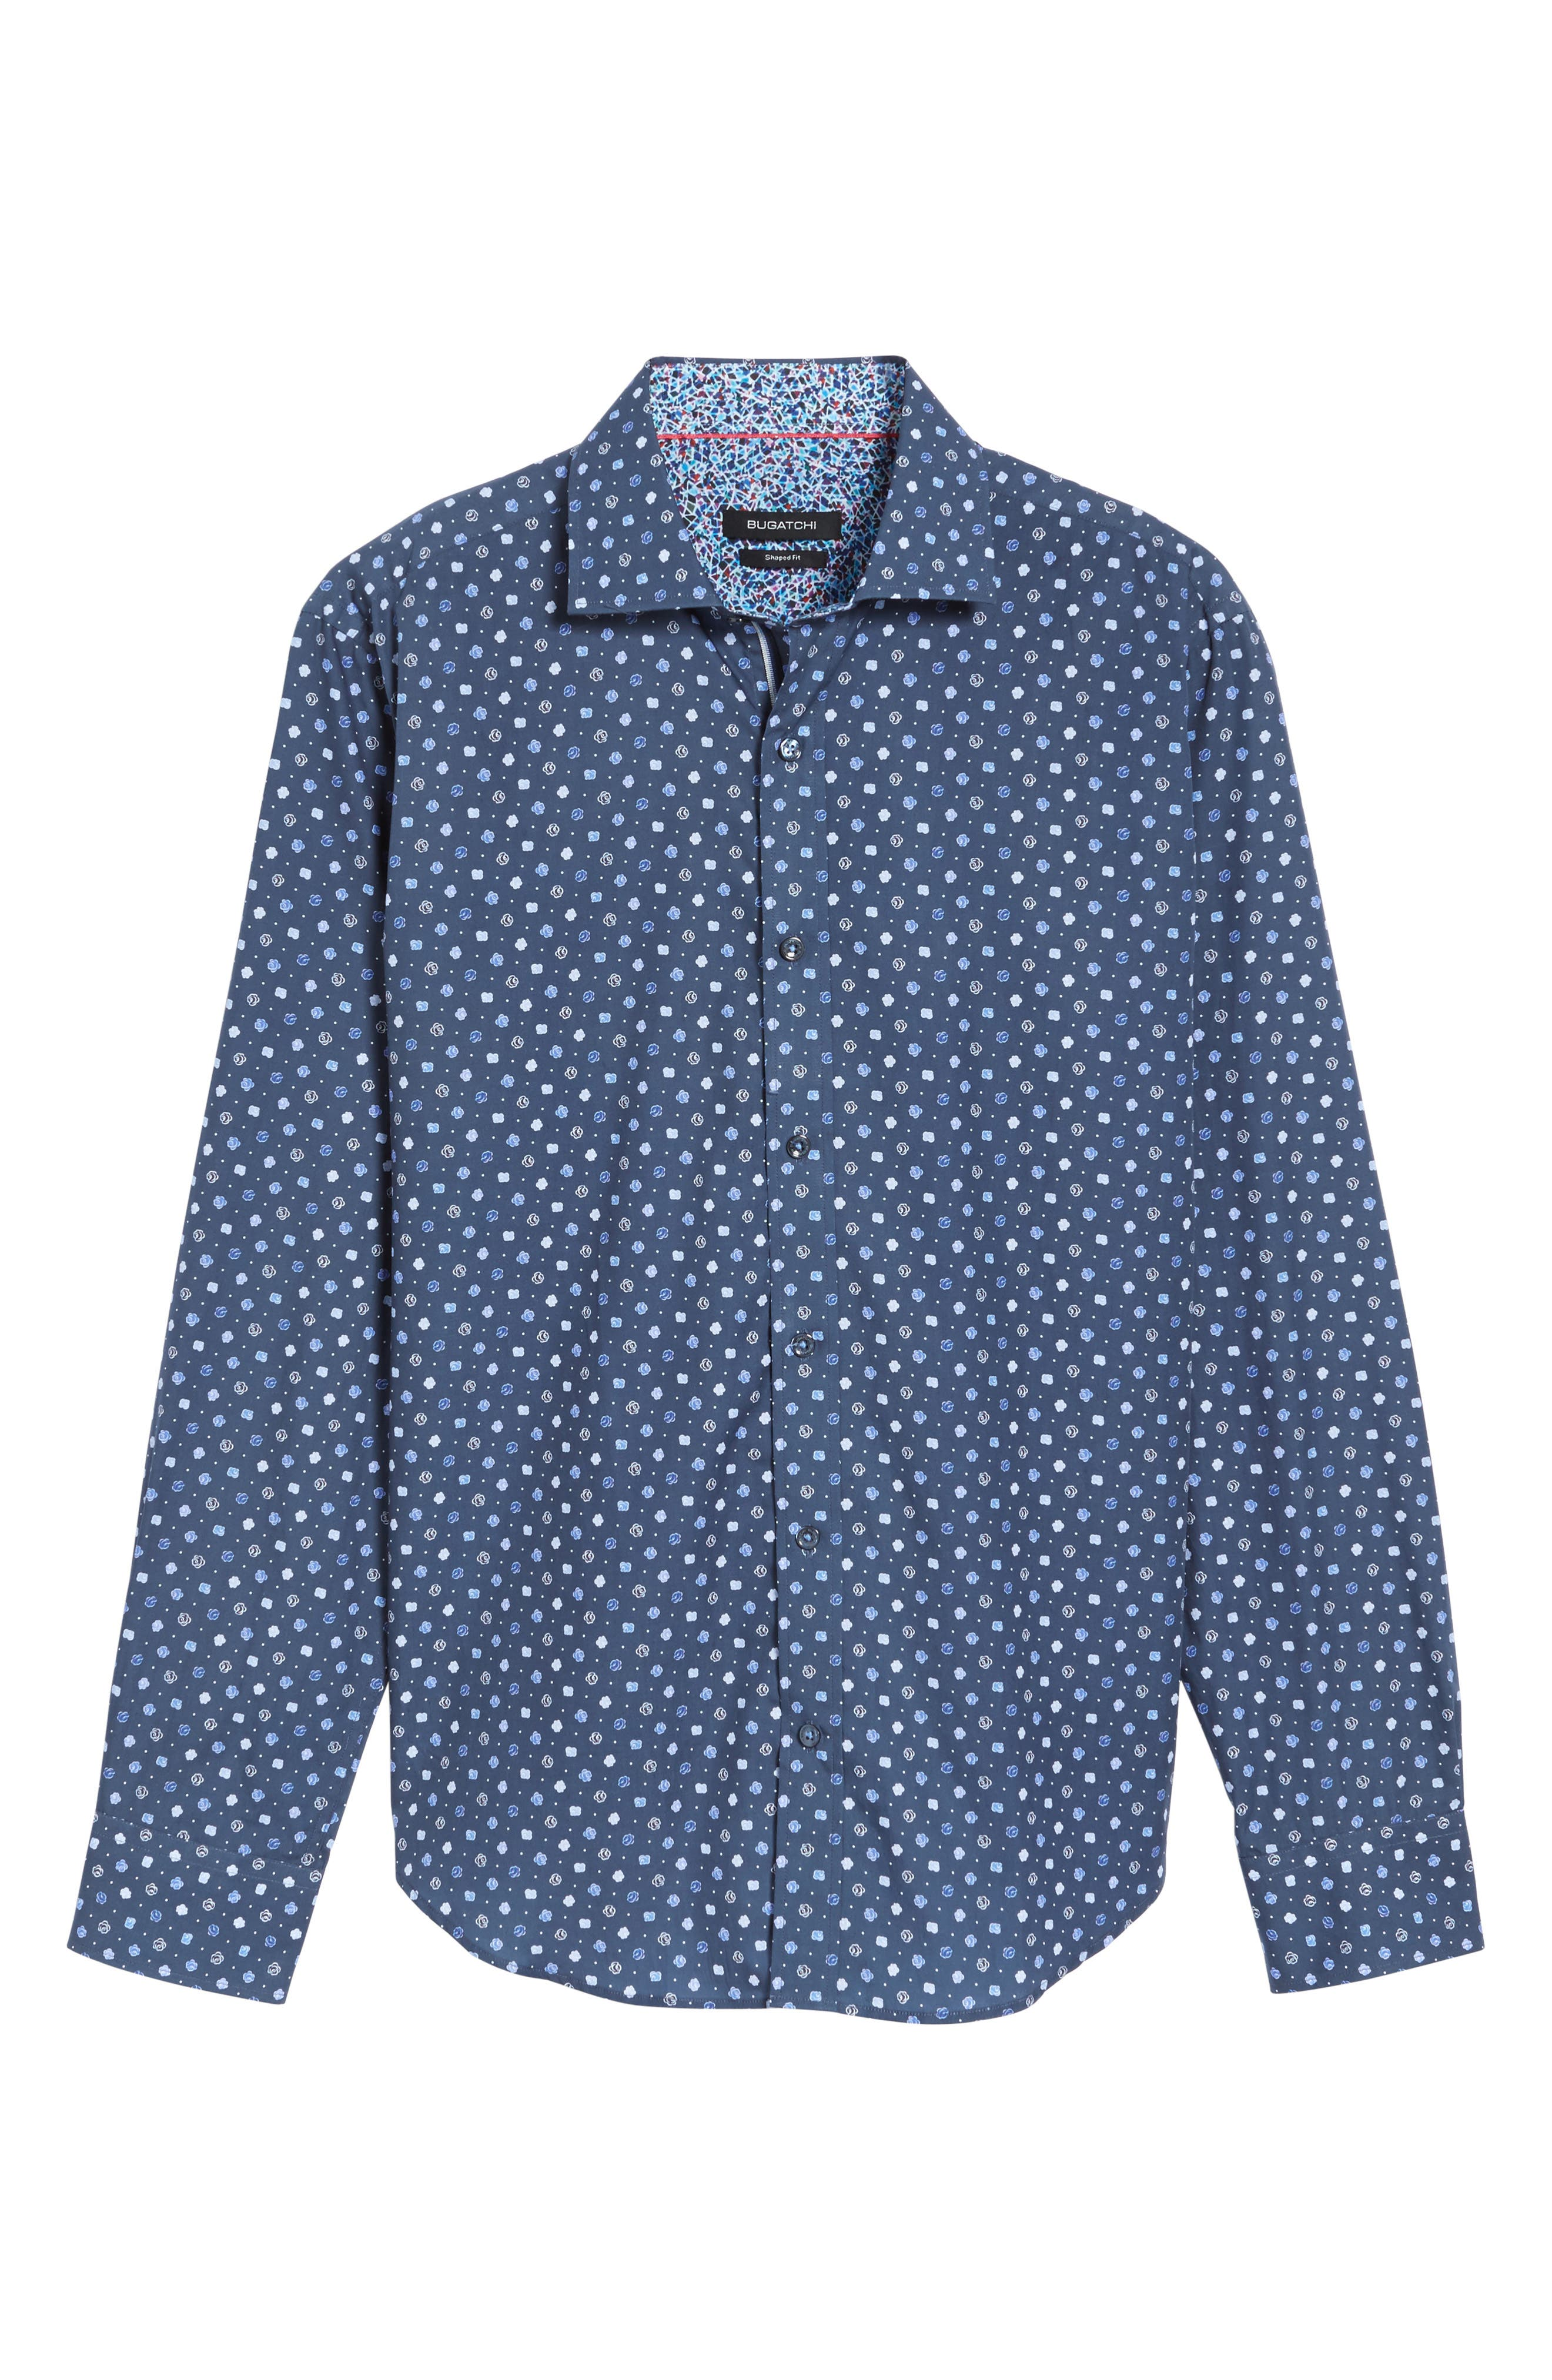 Shaped Fit Flower Print Sport Shirt,                             Alternate thumbnail 7, color,                             Navy